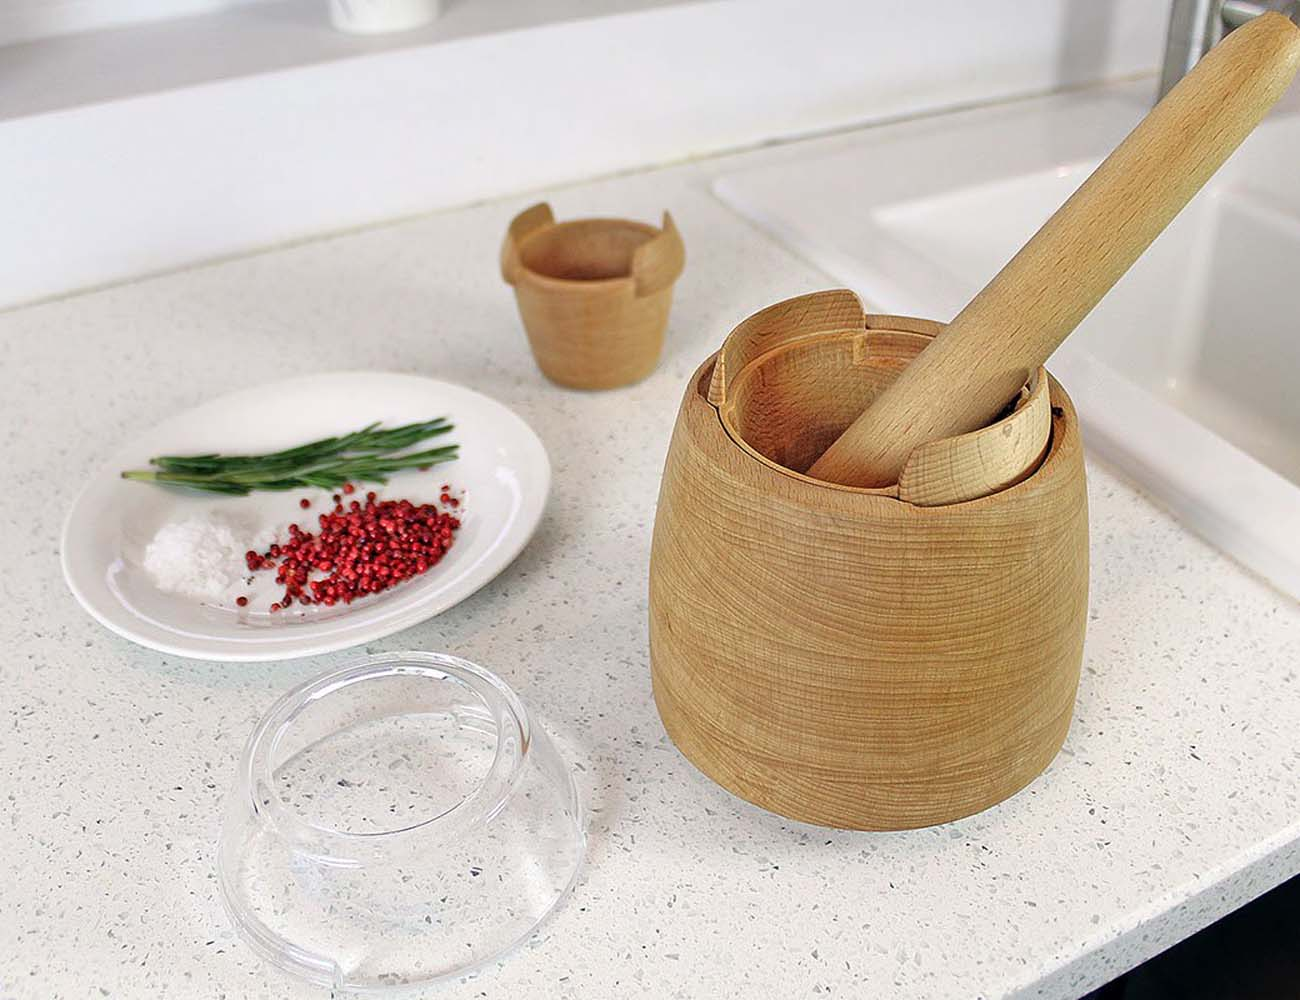 Mesto – Updating the Mortar & Pestle for the 21st Century